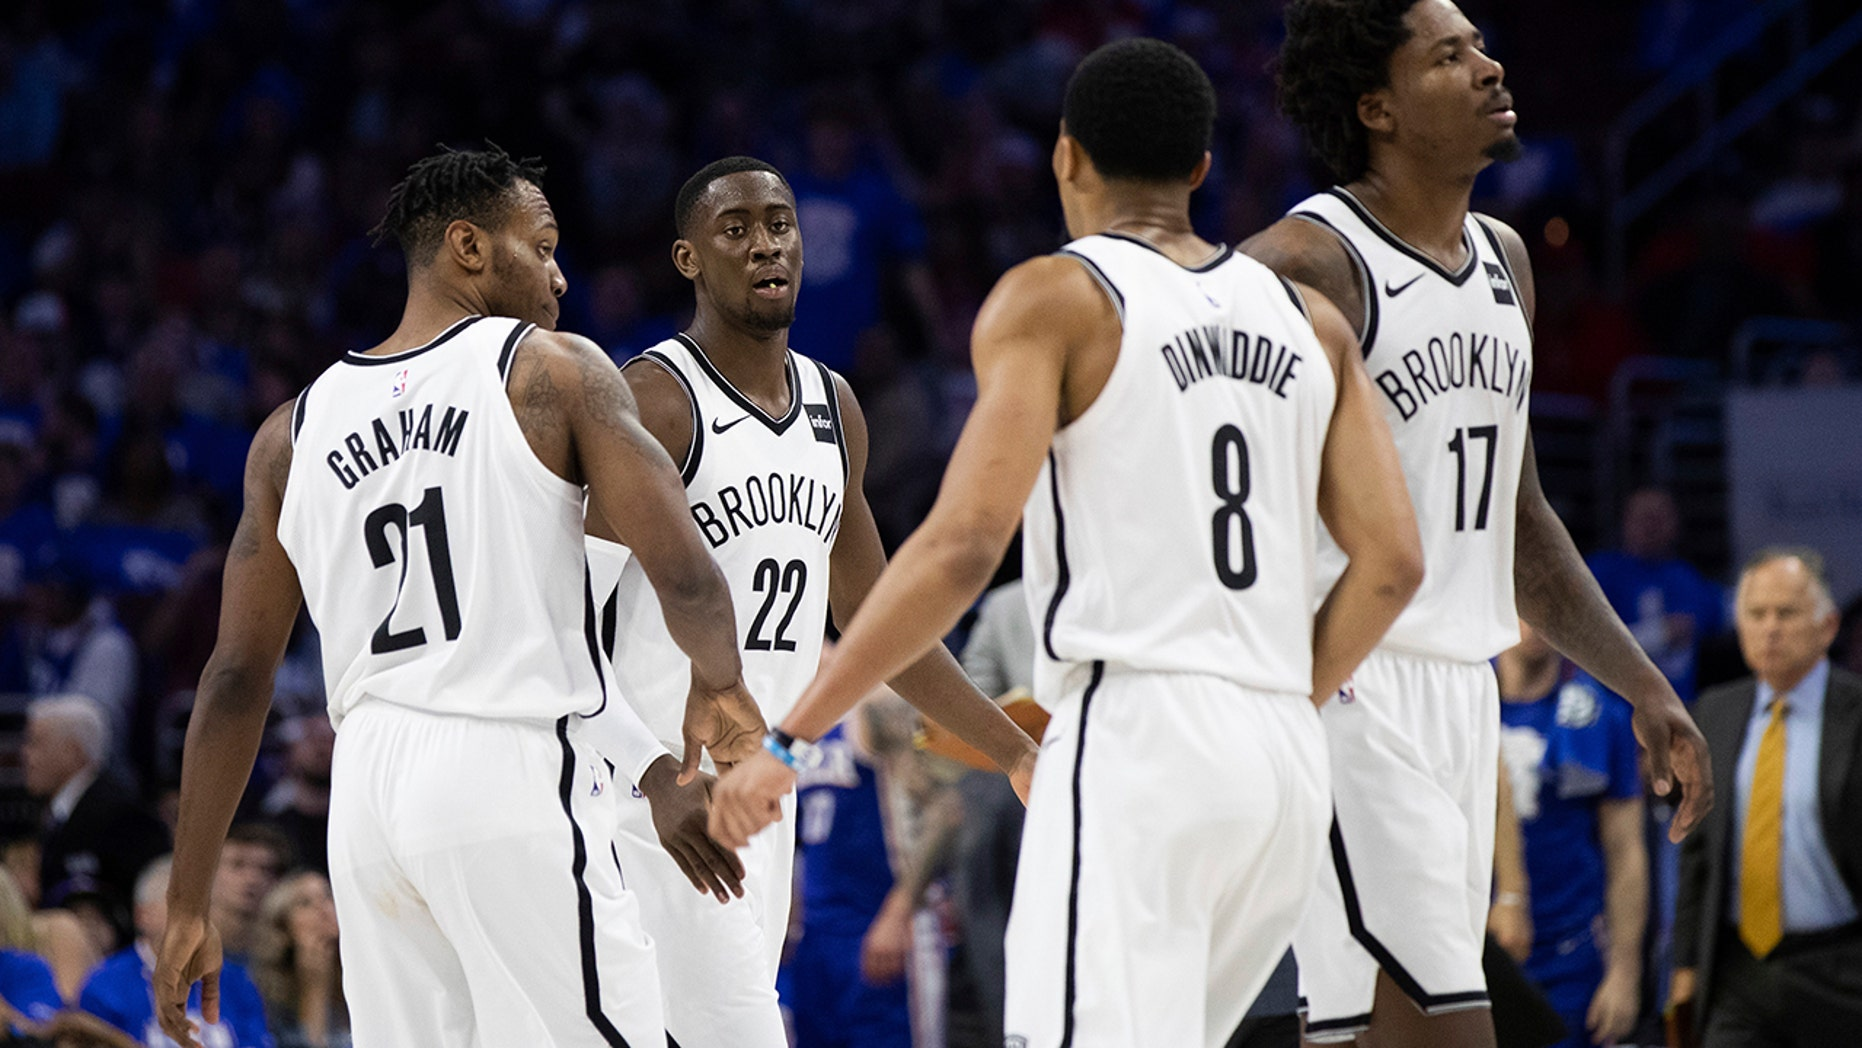 Brooklyn Nets' Caris LeVert, center left, celebrates with his teammates during the second half in Game 1 of a first-round NBA basketball playoff series against the Philadelphia 76ers, Saturday, April 13, 2019, in Philadelphia. The Nets won 111-102. (AP Photo/Chris Szagola)